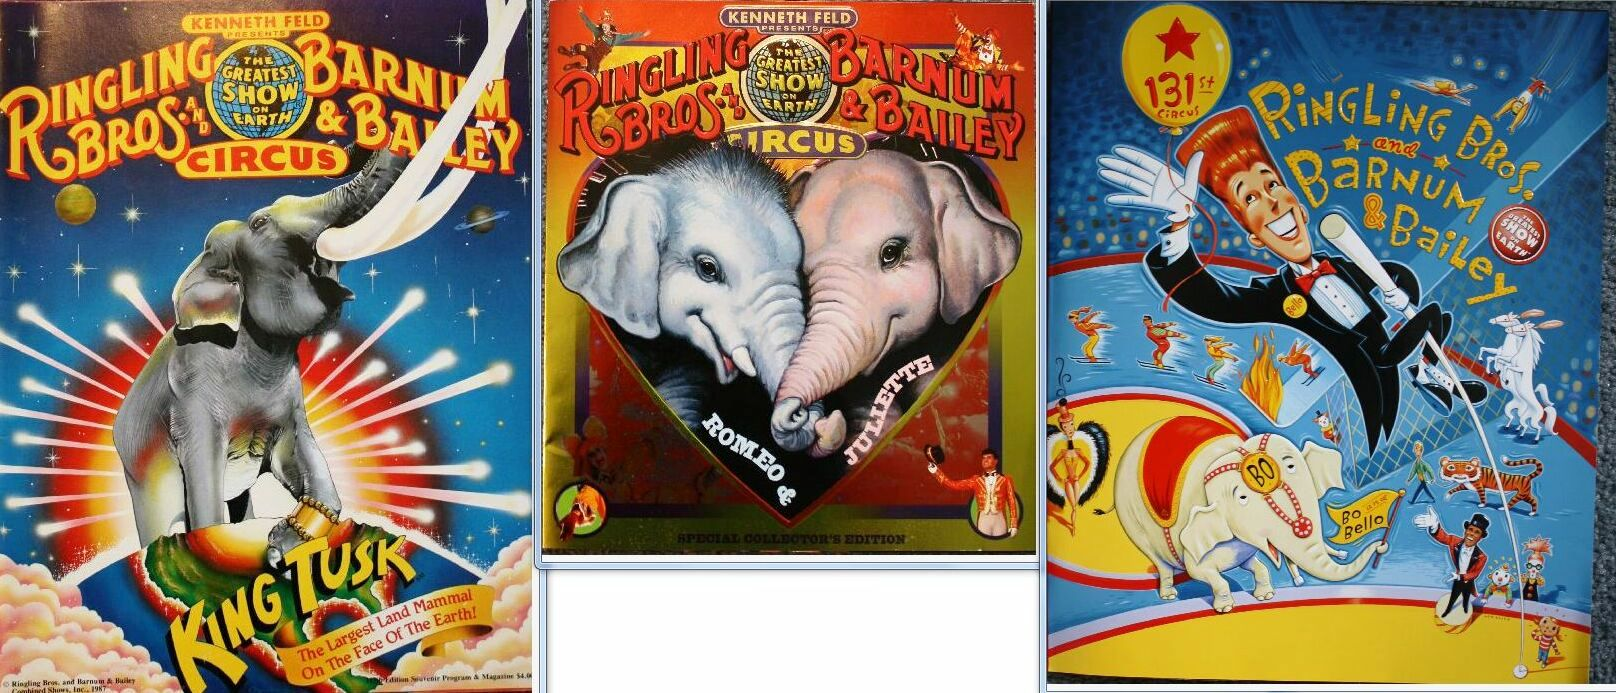 Souvenir programs from three years when Ringling Bros. and Barnum & Bailey featured elephants. These programs are valued at $5-10 each.